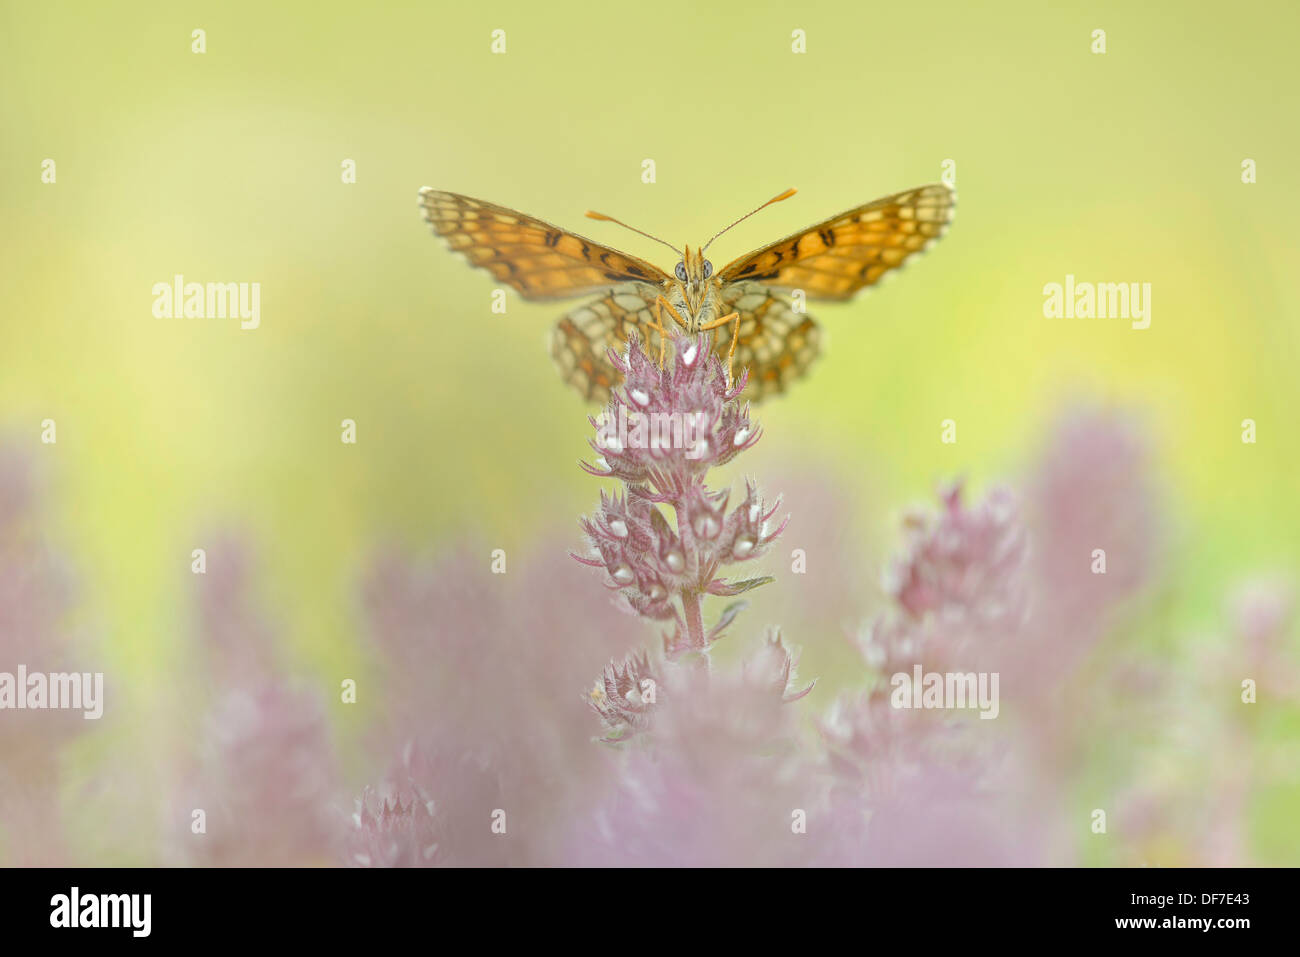 Heath Fritillary (Melitaea athalia), Ústí nad Labem Region, Czech Republic - Stock Image